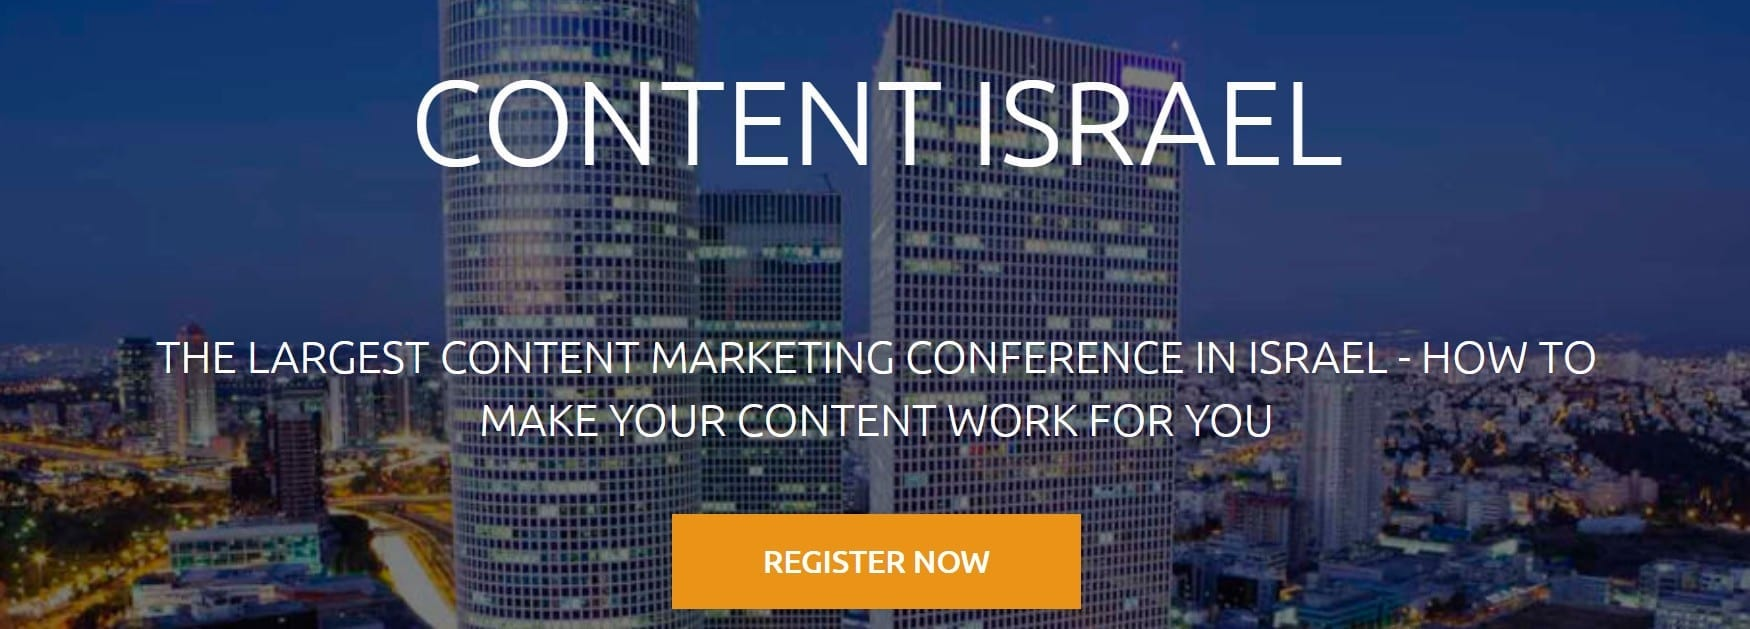 content israel conference